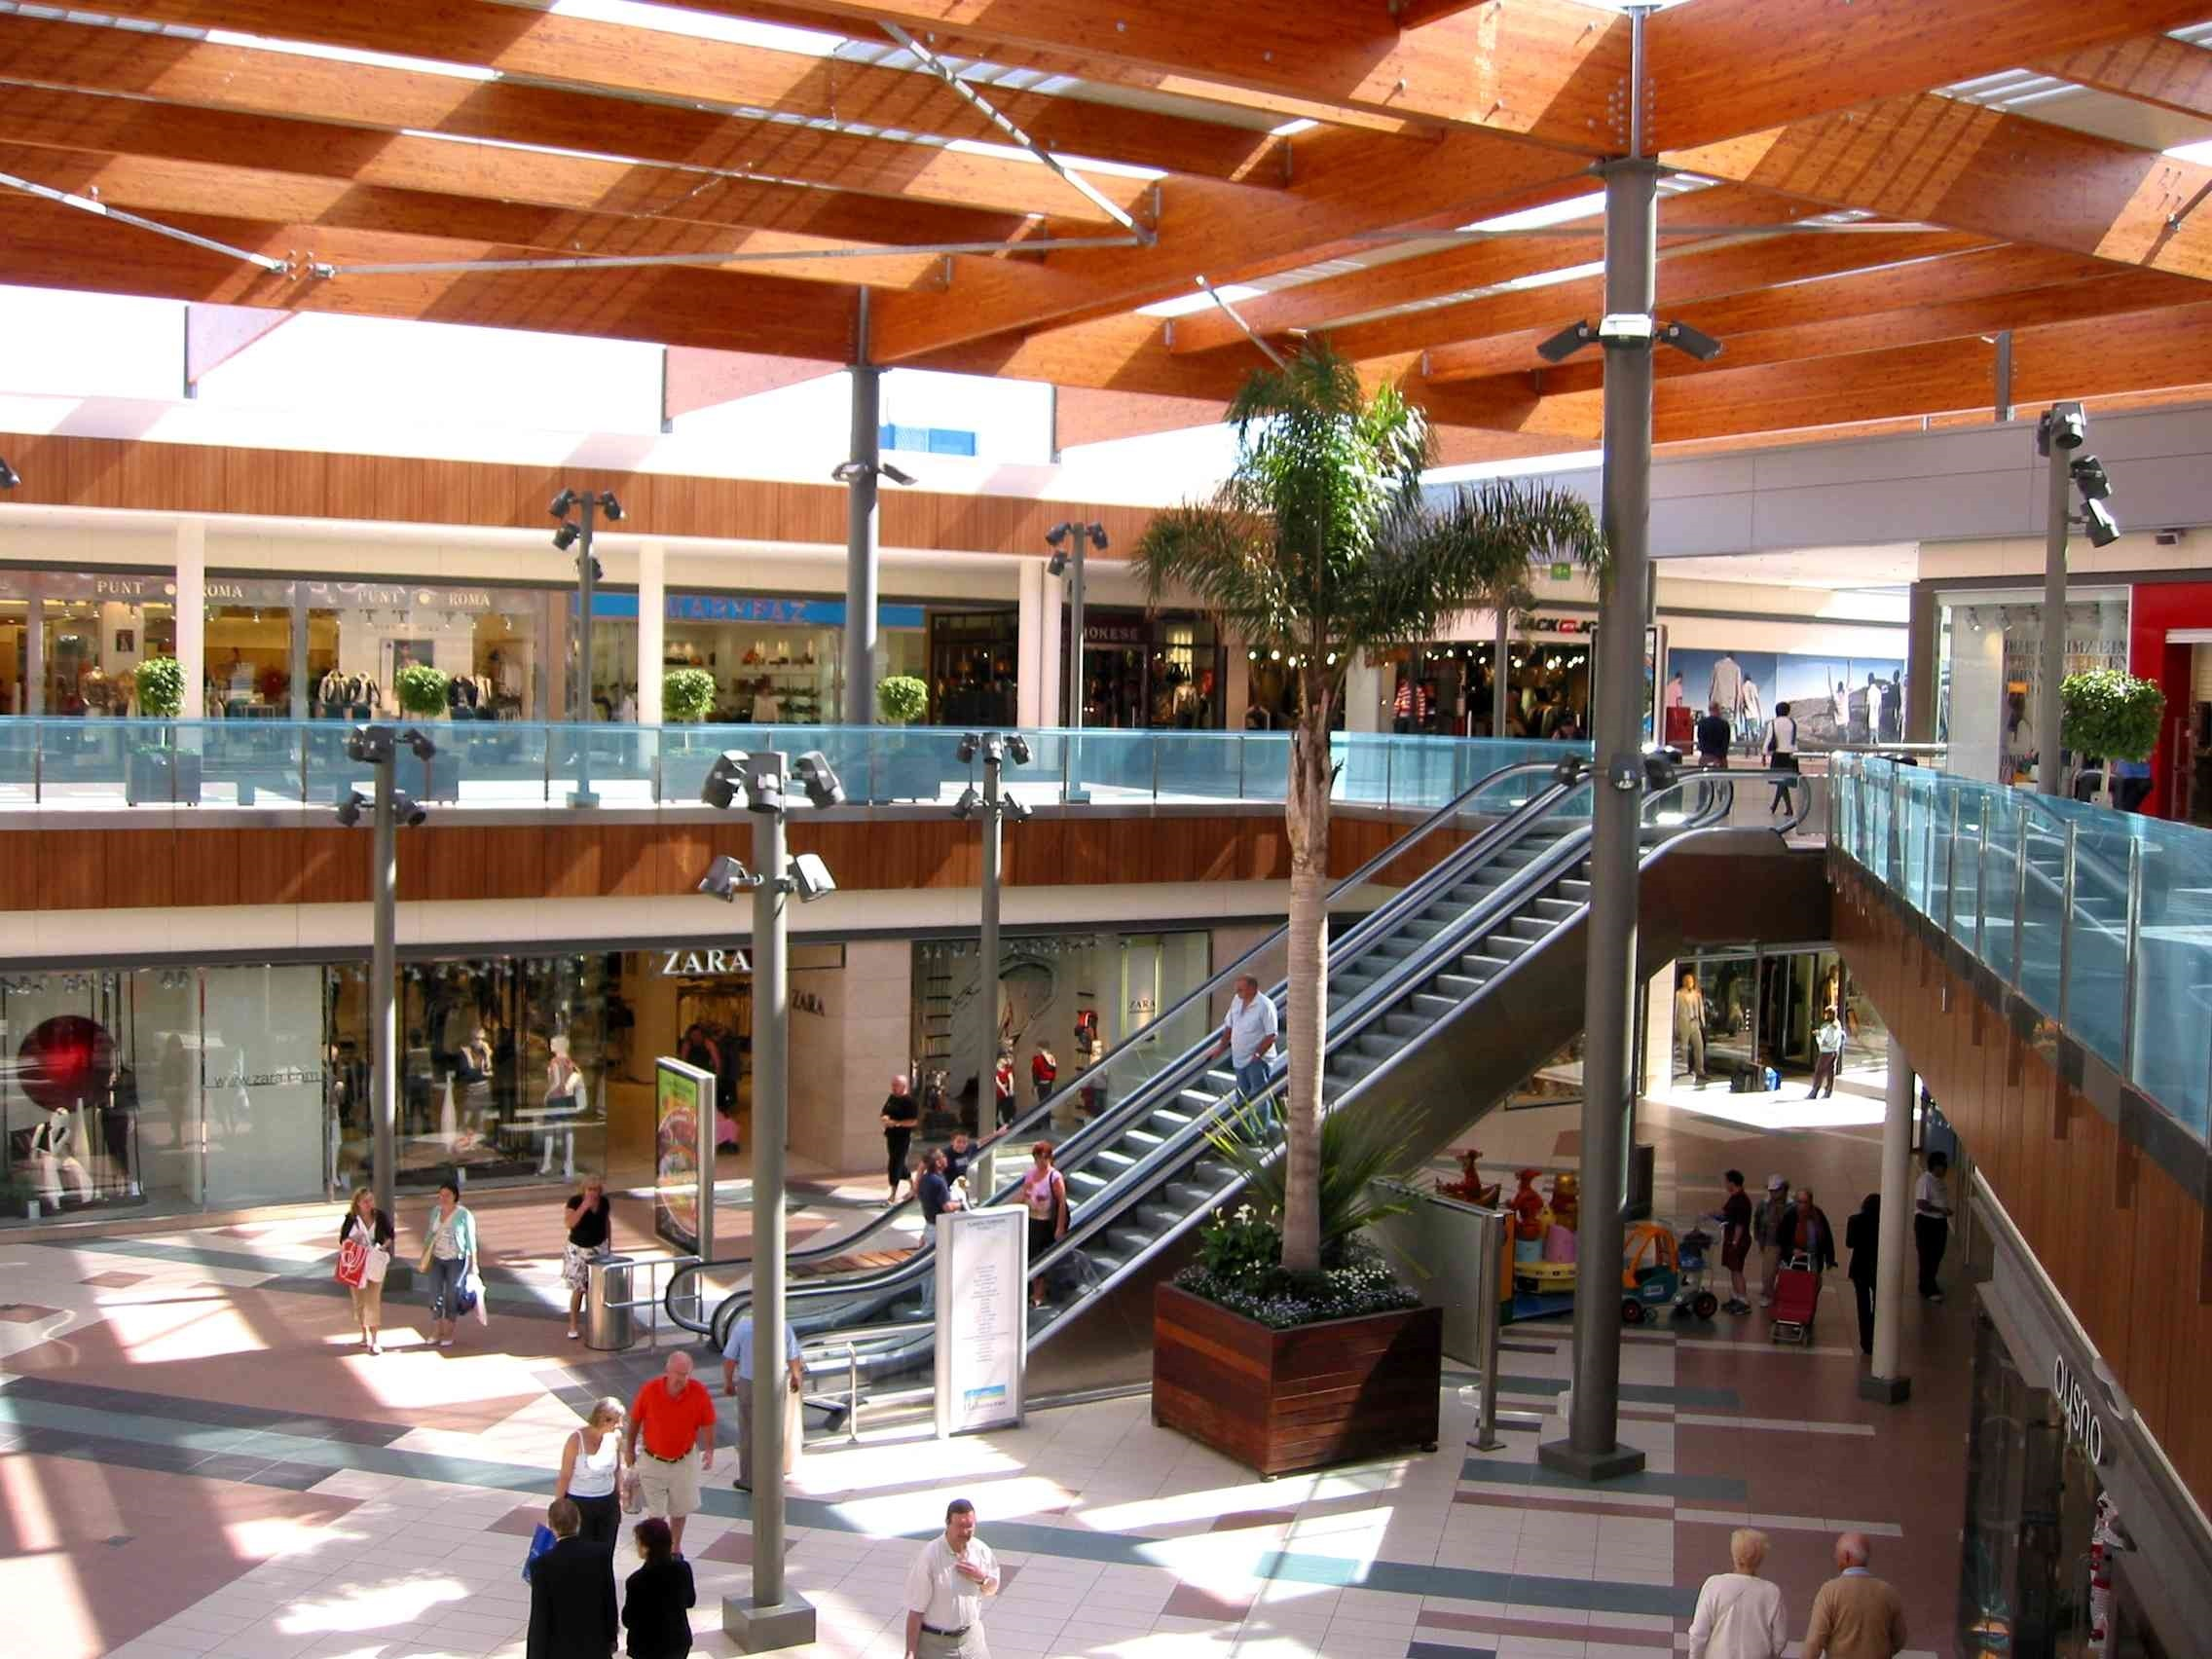 Vukile acquires shopping centre in Spain for EUR80.6m growing its Spanish retail investment to nearly EUR400m